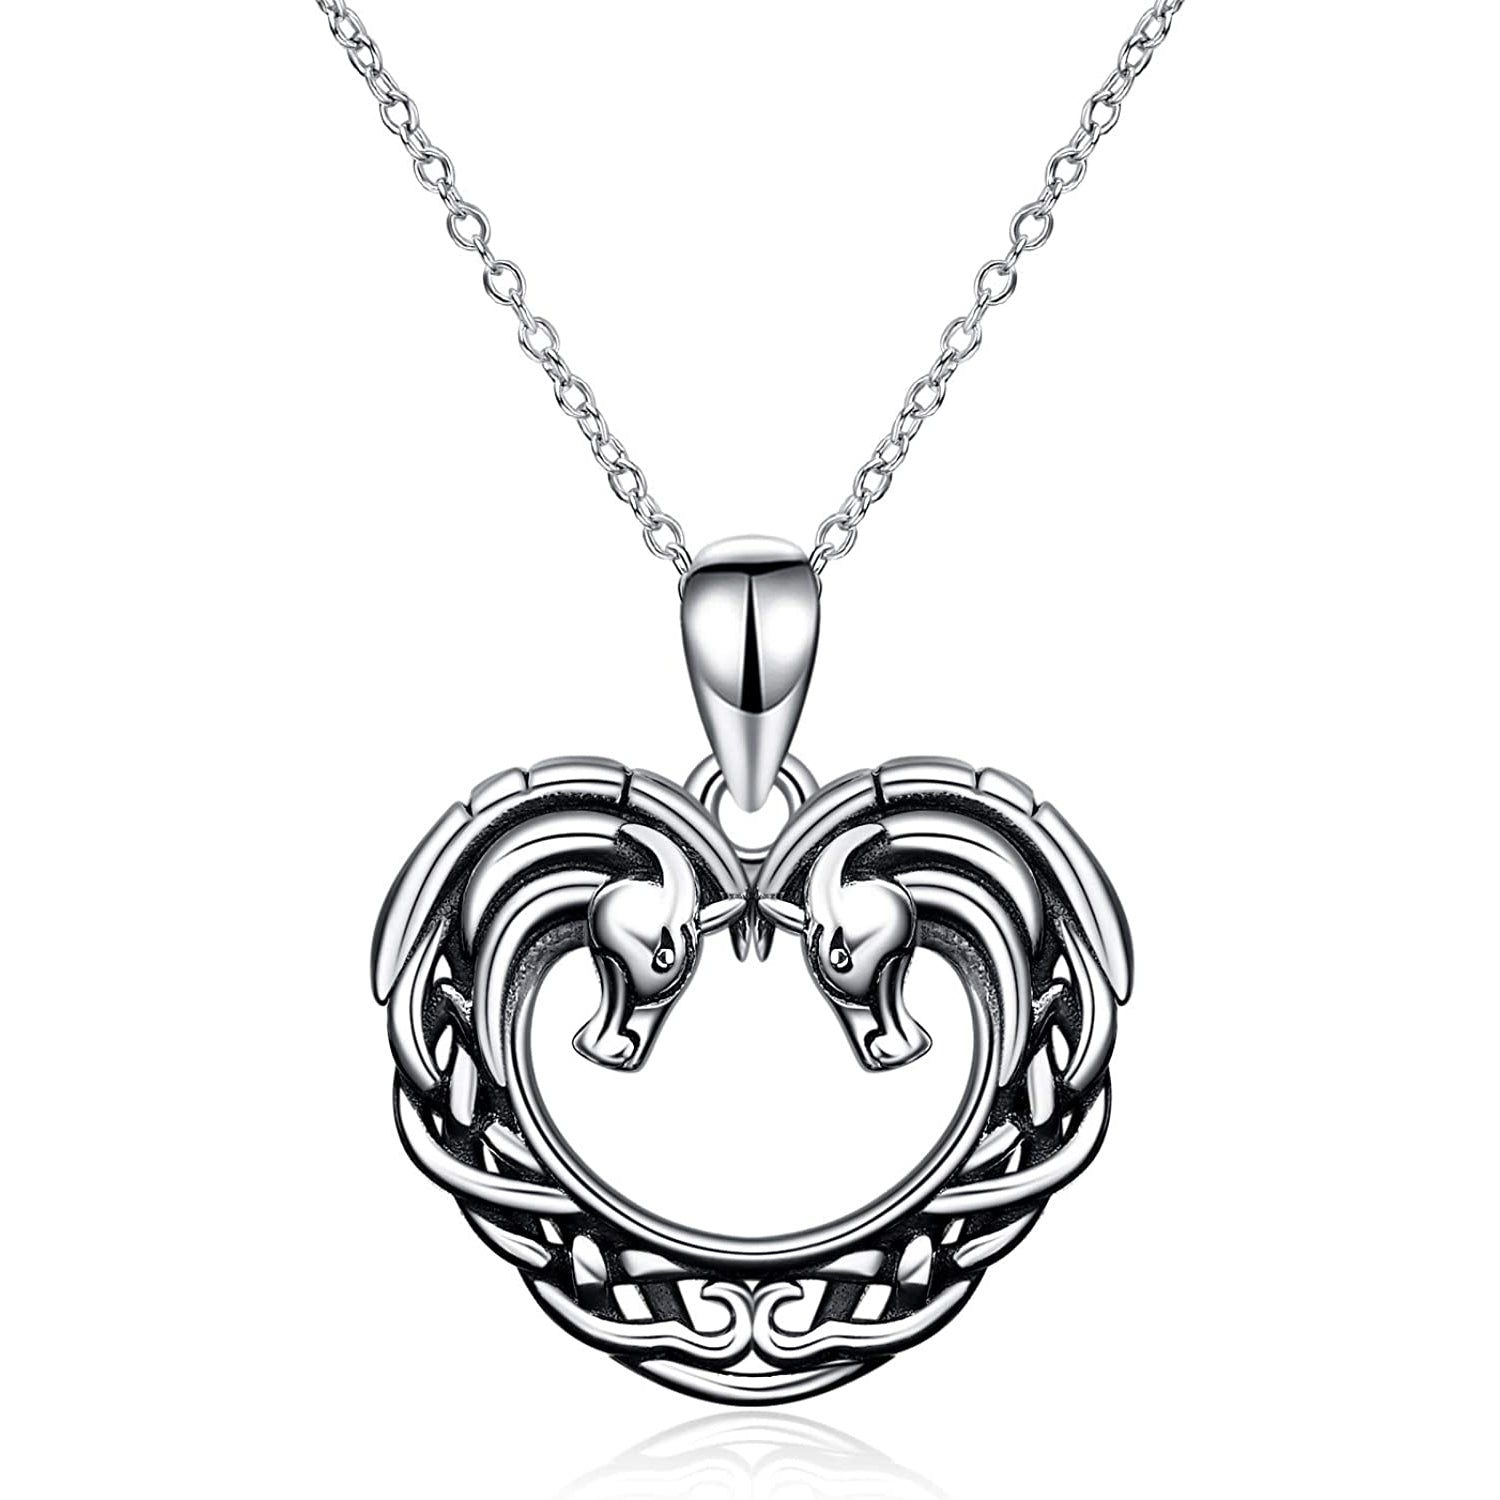 925 Sterling Silver Horse Heart Pendant Necklace